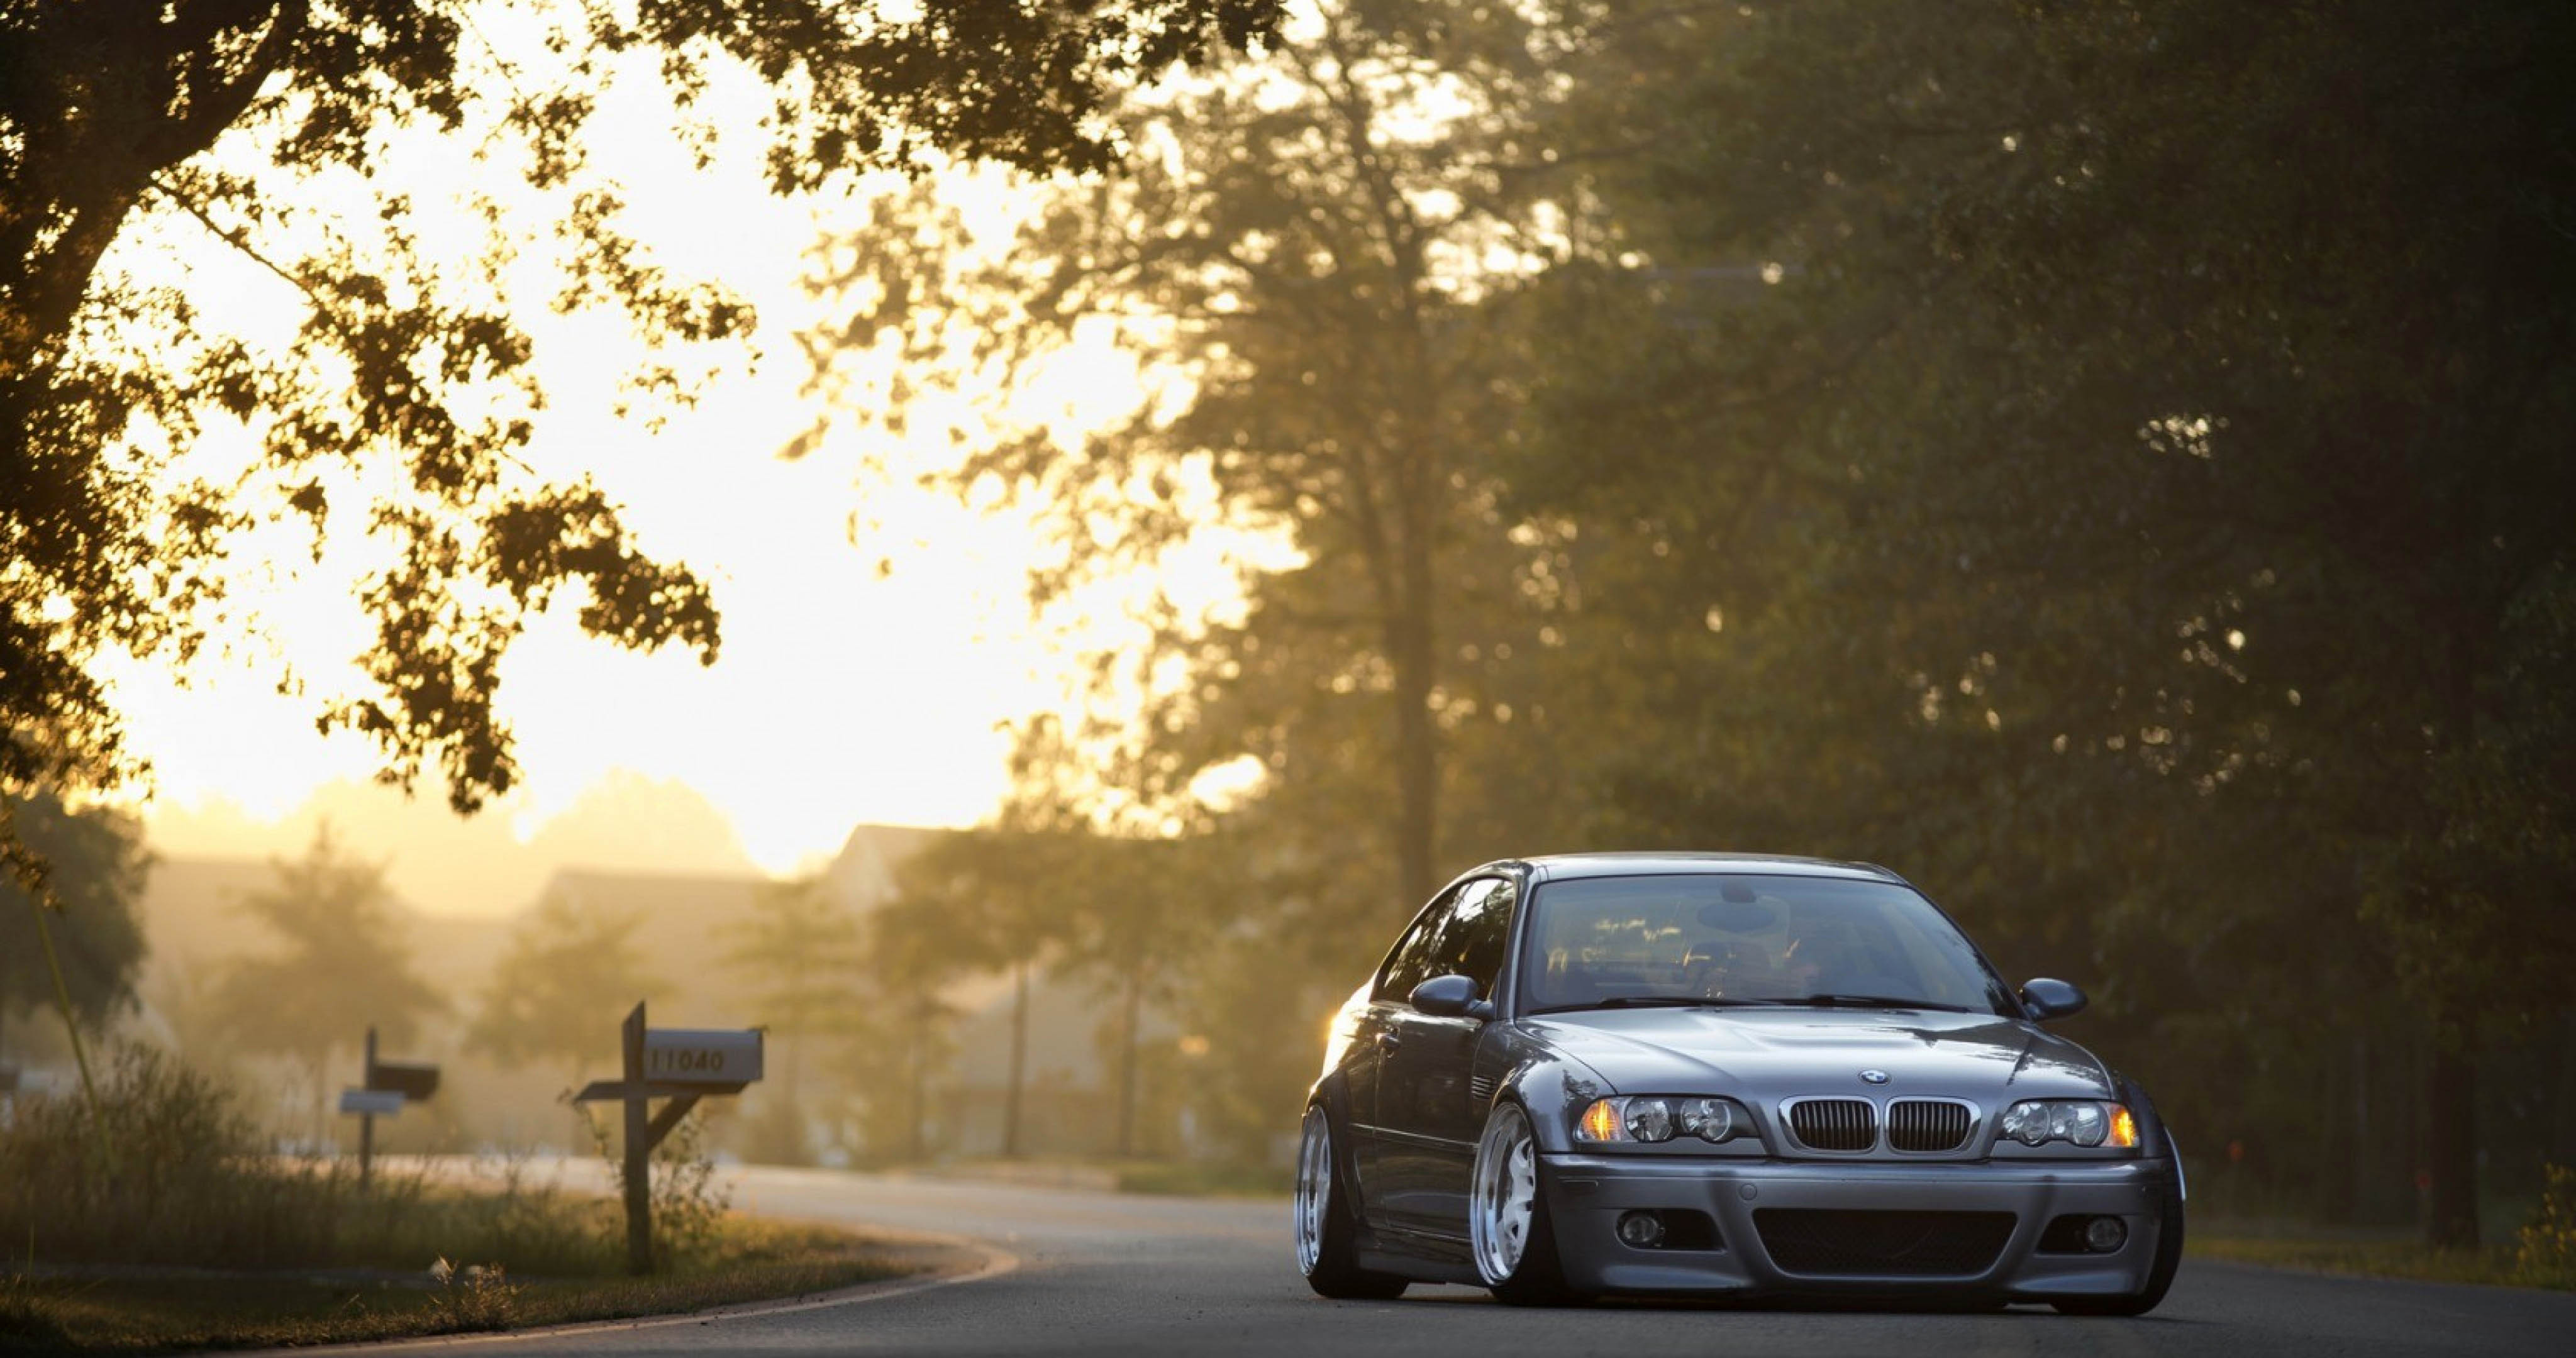 Free Download Custom Bmw M3 E46 4096x2160 Cinema 4k Ultra Hd Uhd 4096x2160 For Your Desktop Mobile Tablet Explore 76 E46 Wallpaper Bmw E30 Wallpaper Bmw E36 Wallpaper Bmw